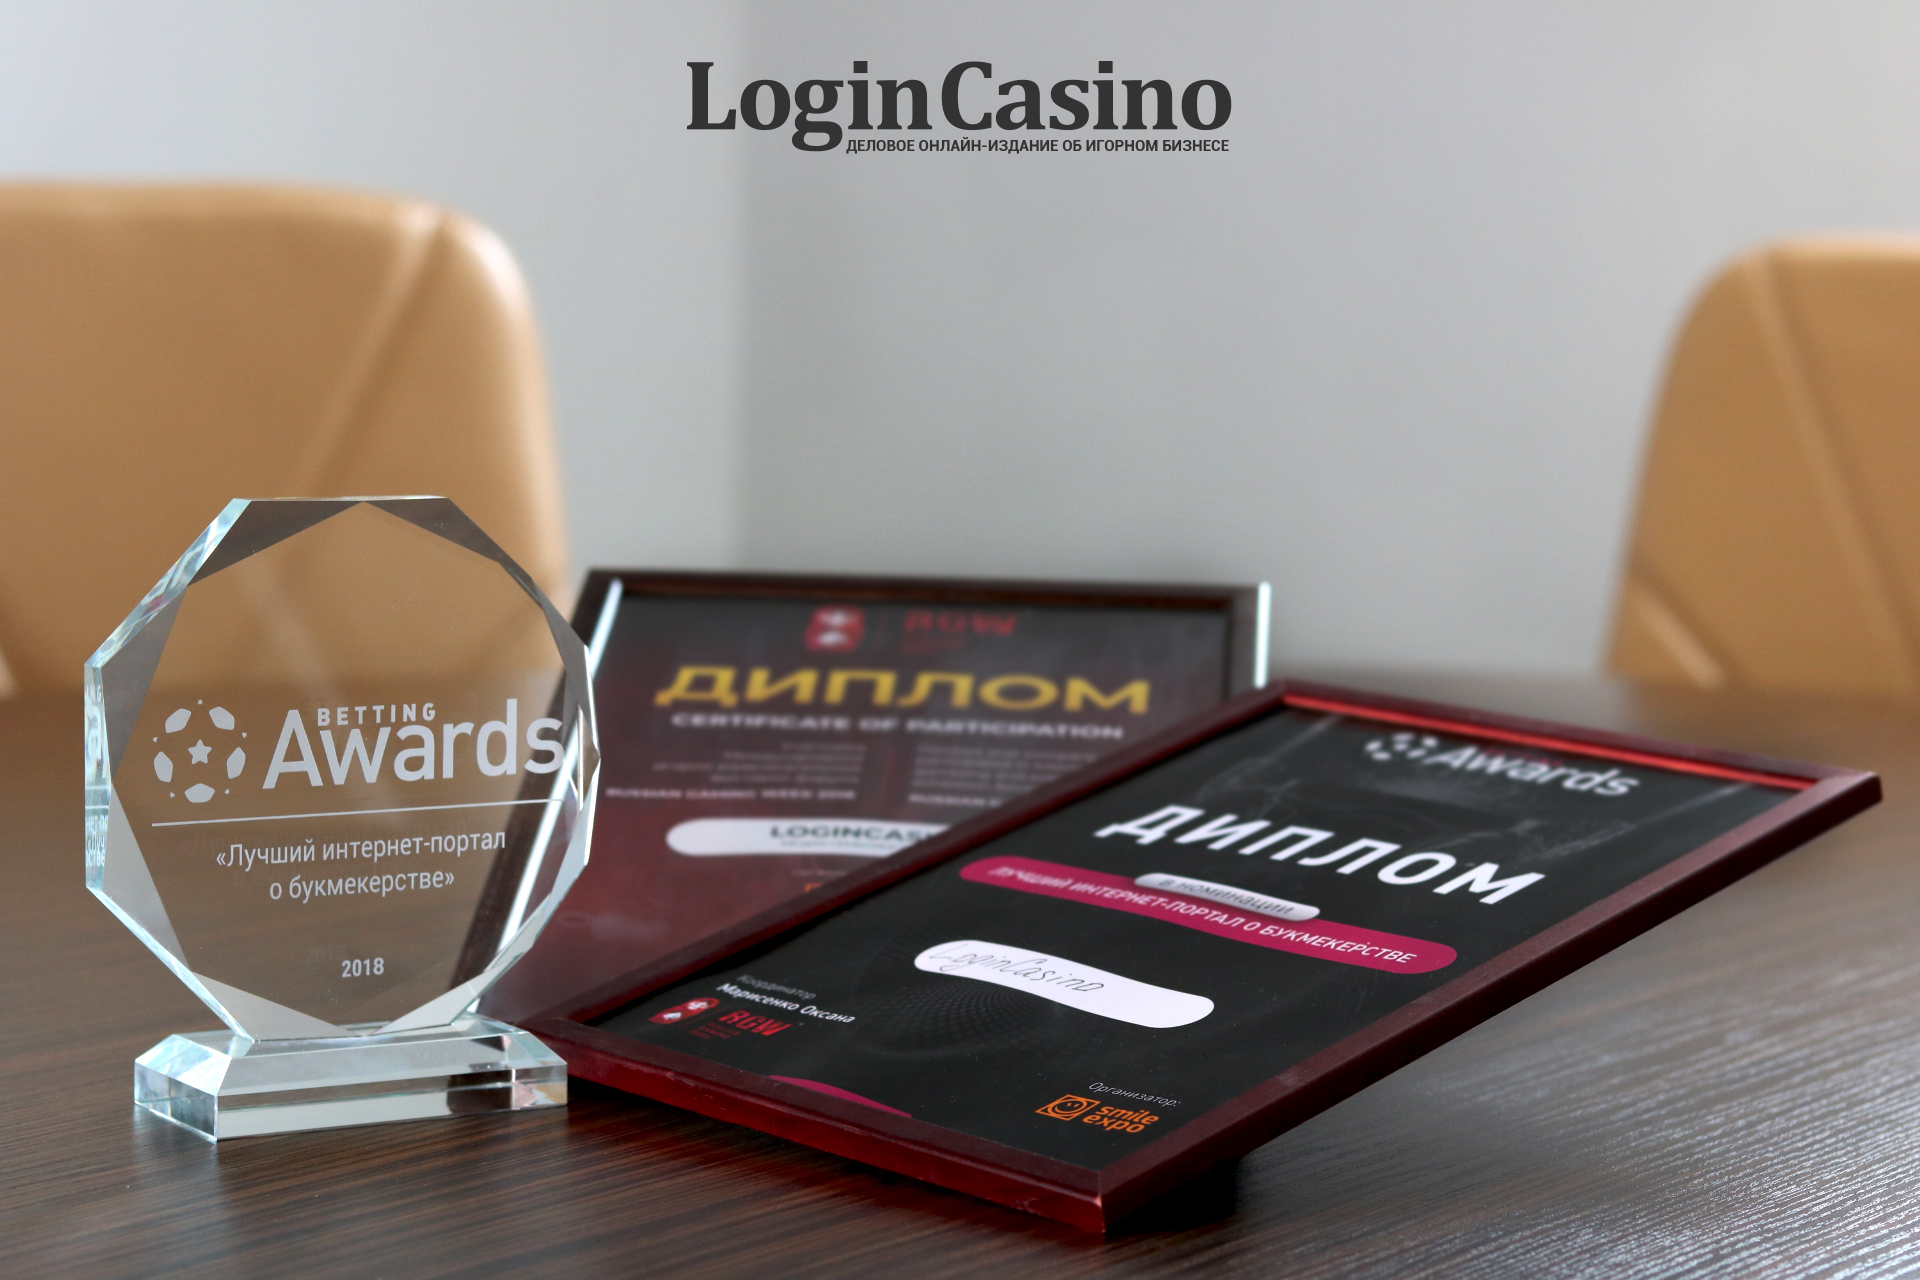 Login Casino Award